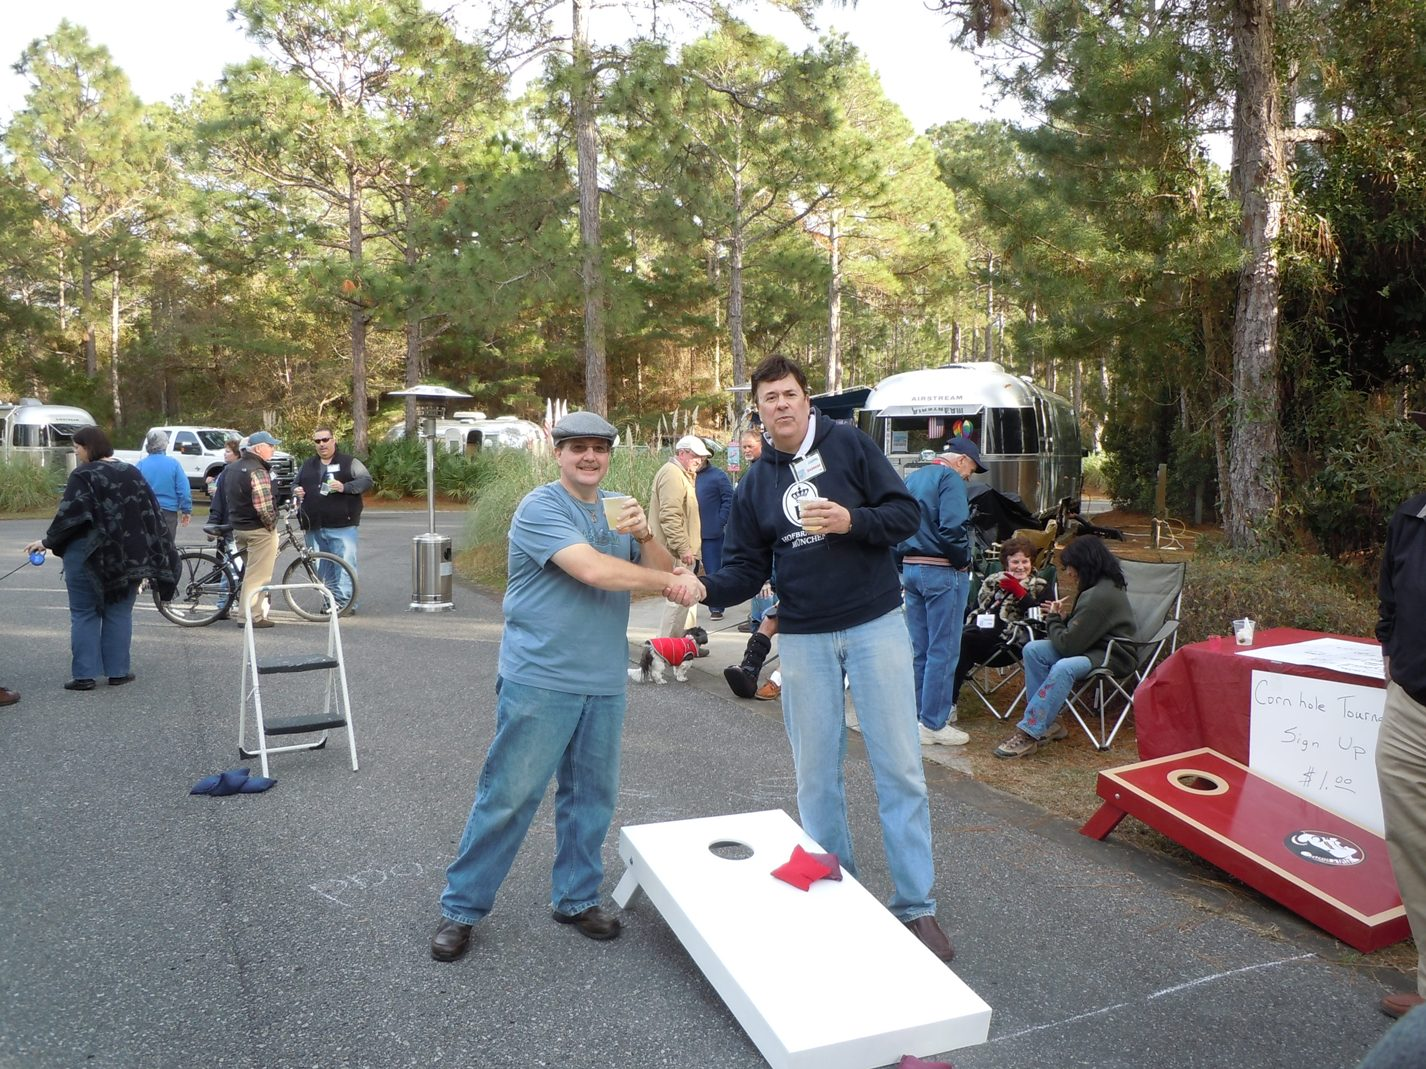 Click image for larger version  Name:2013 Canopener Cornhole Champ.jpg Views:72 Size:407.0 KB ID:200964